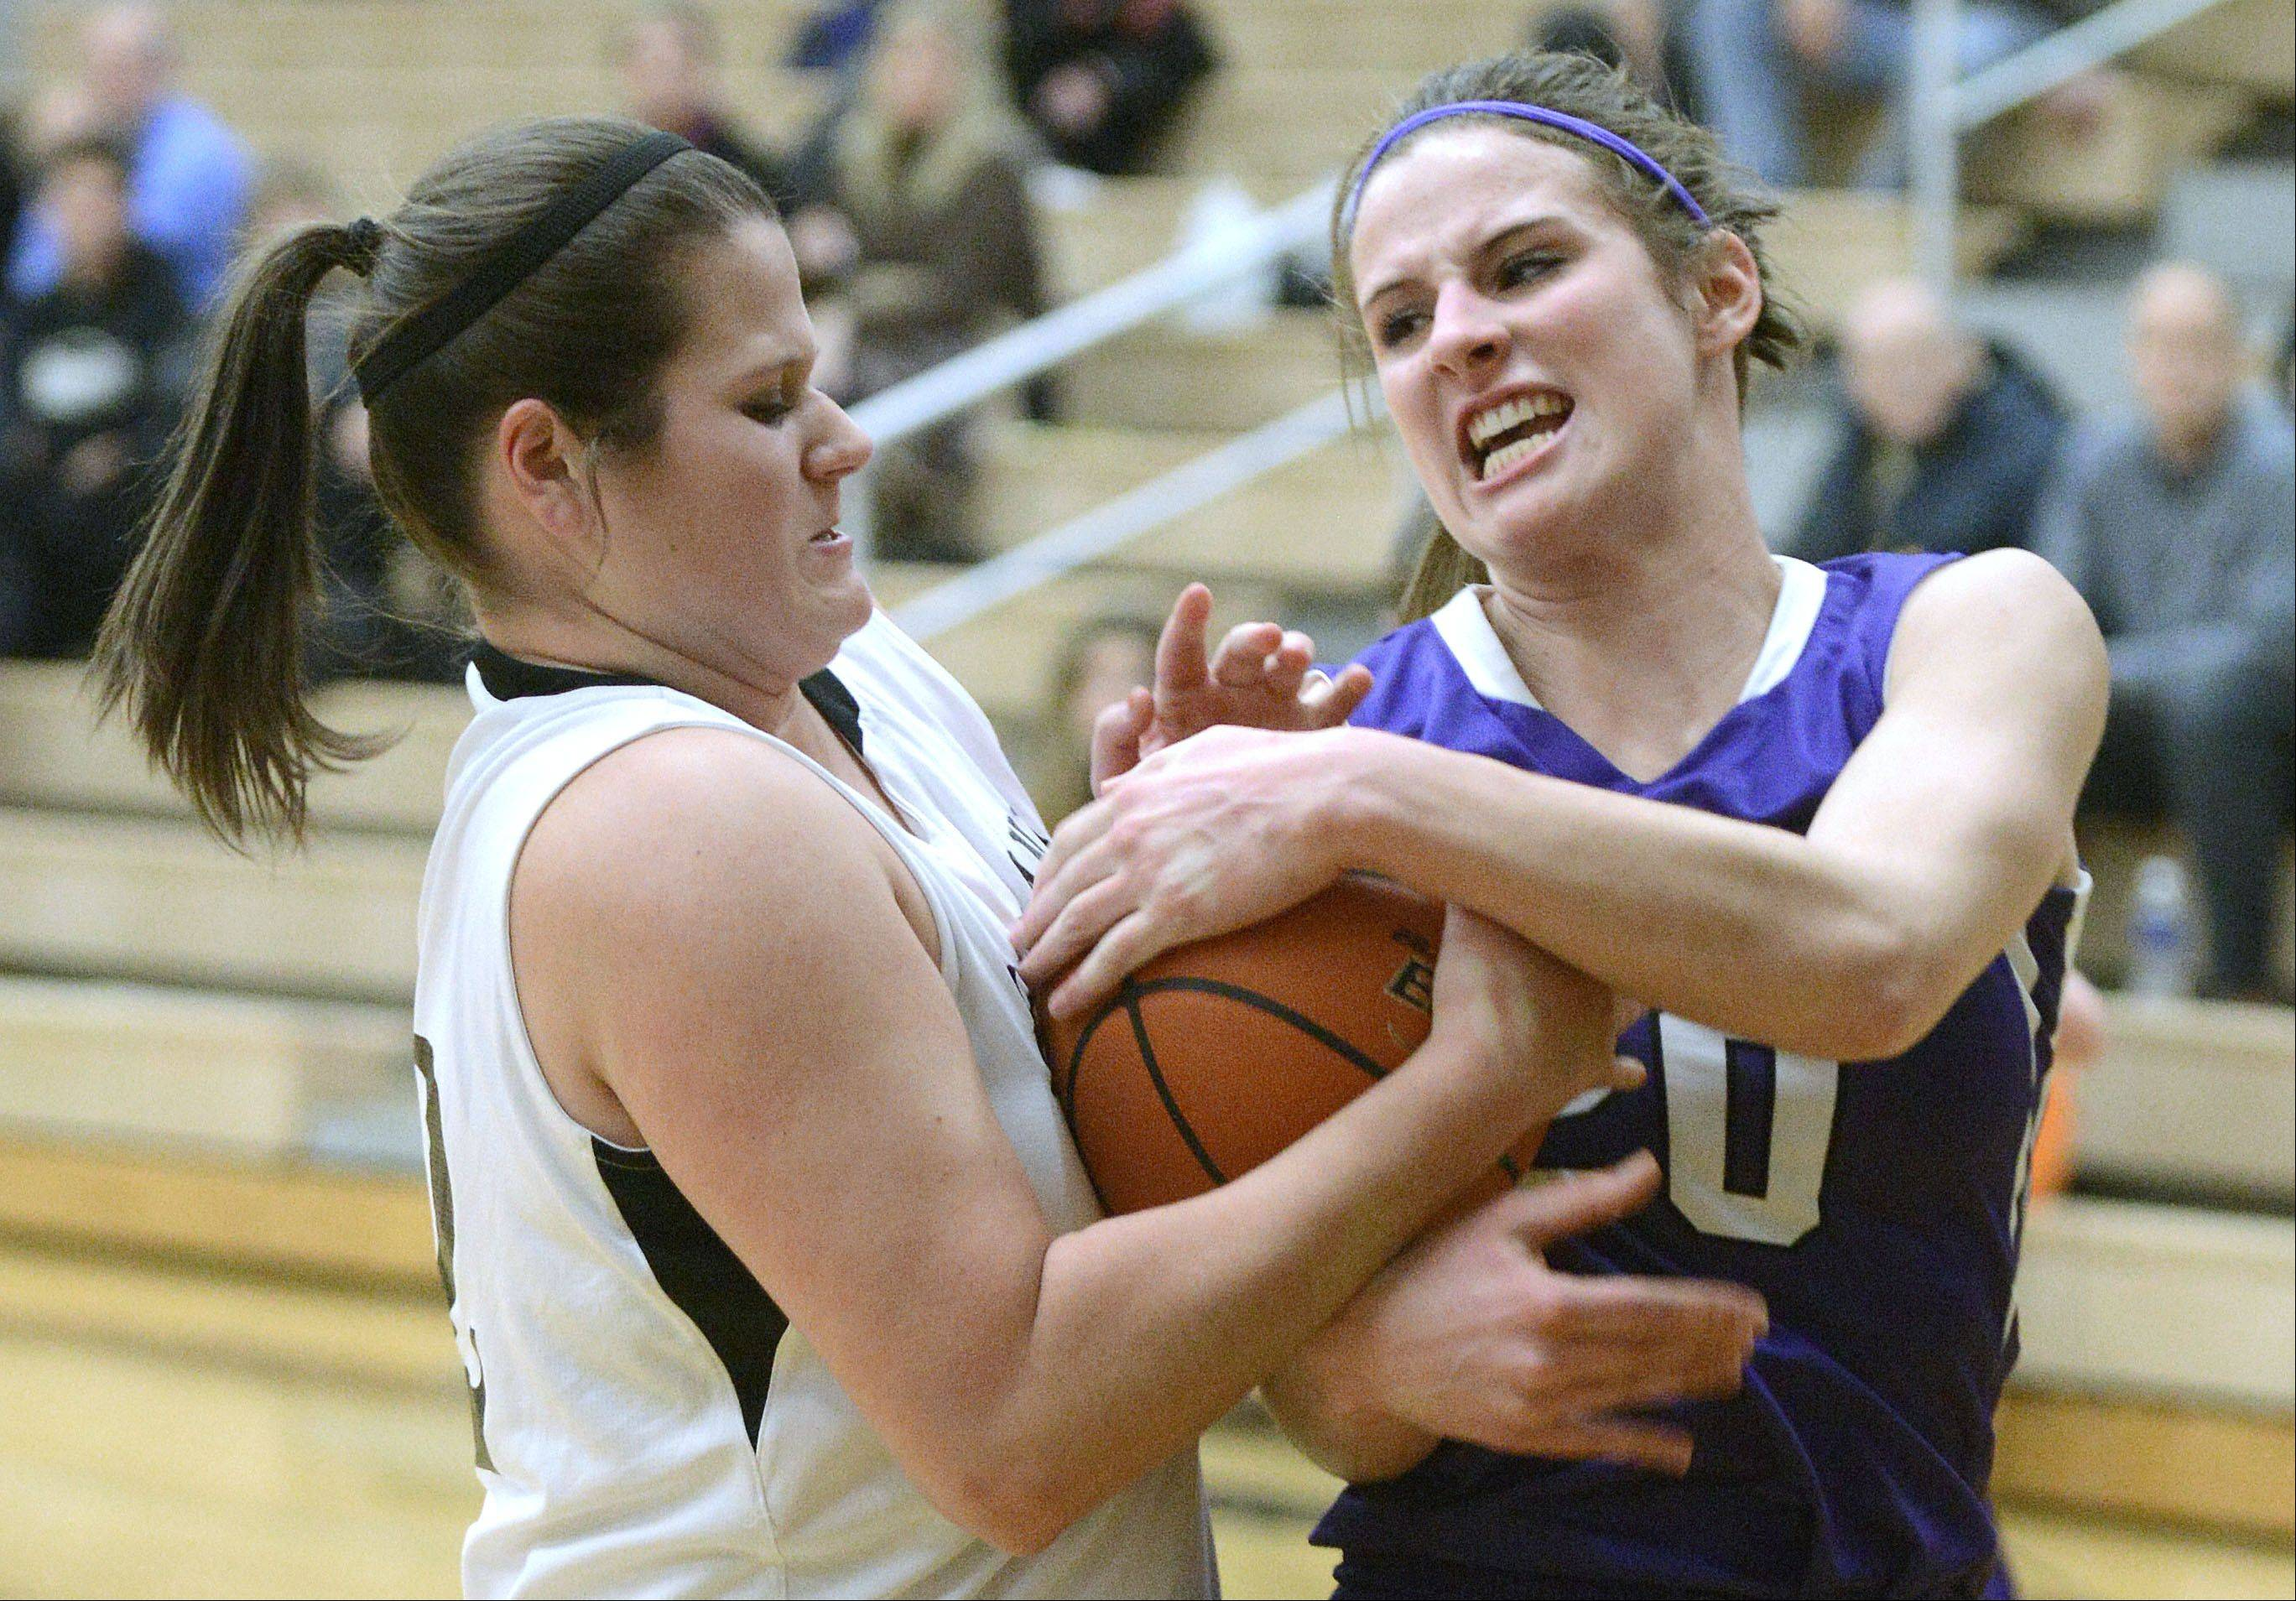 Kaneland's Kelly Wallner and Rochelle's Abby Gould wrestle for the ball in the first quarter on Tuesday, December 10.